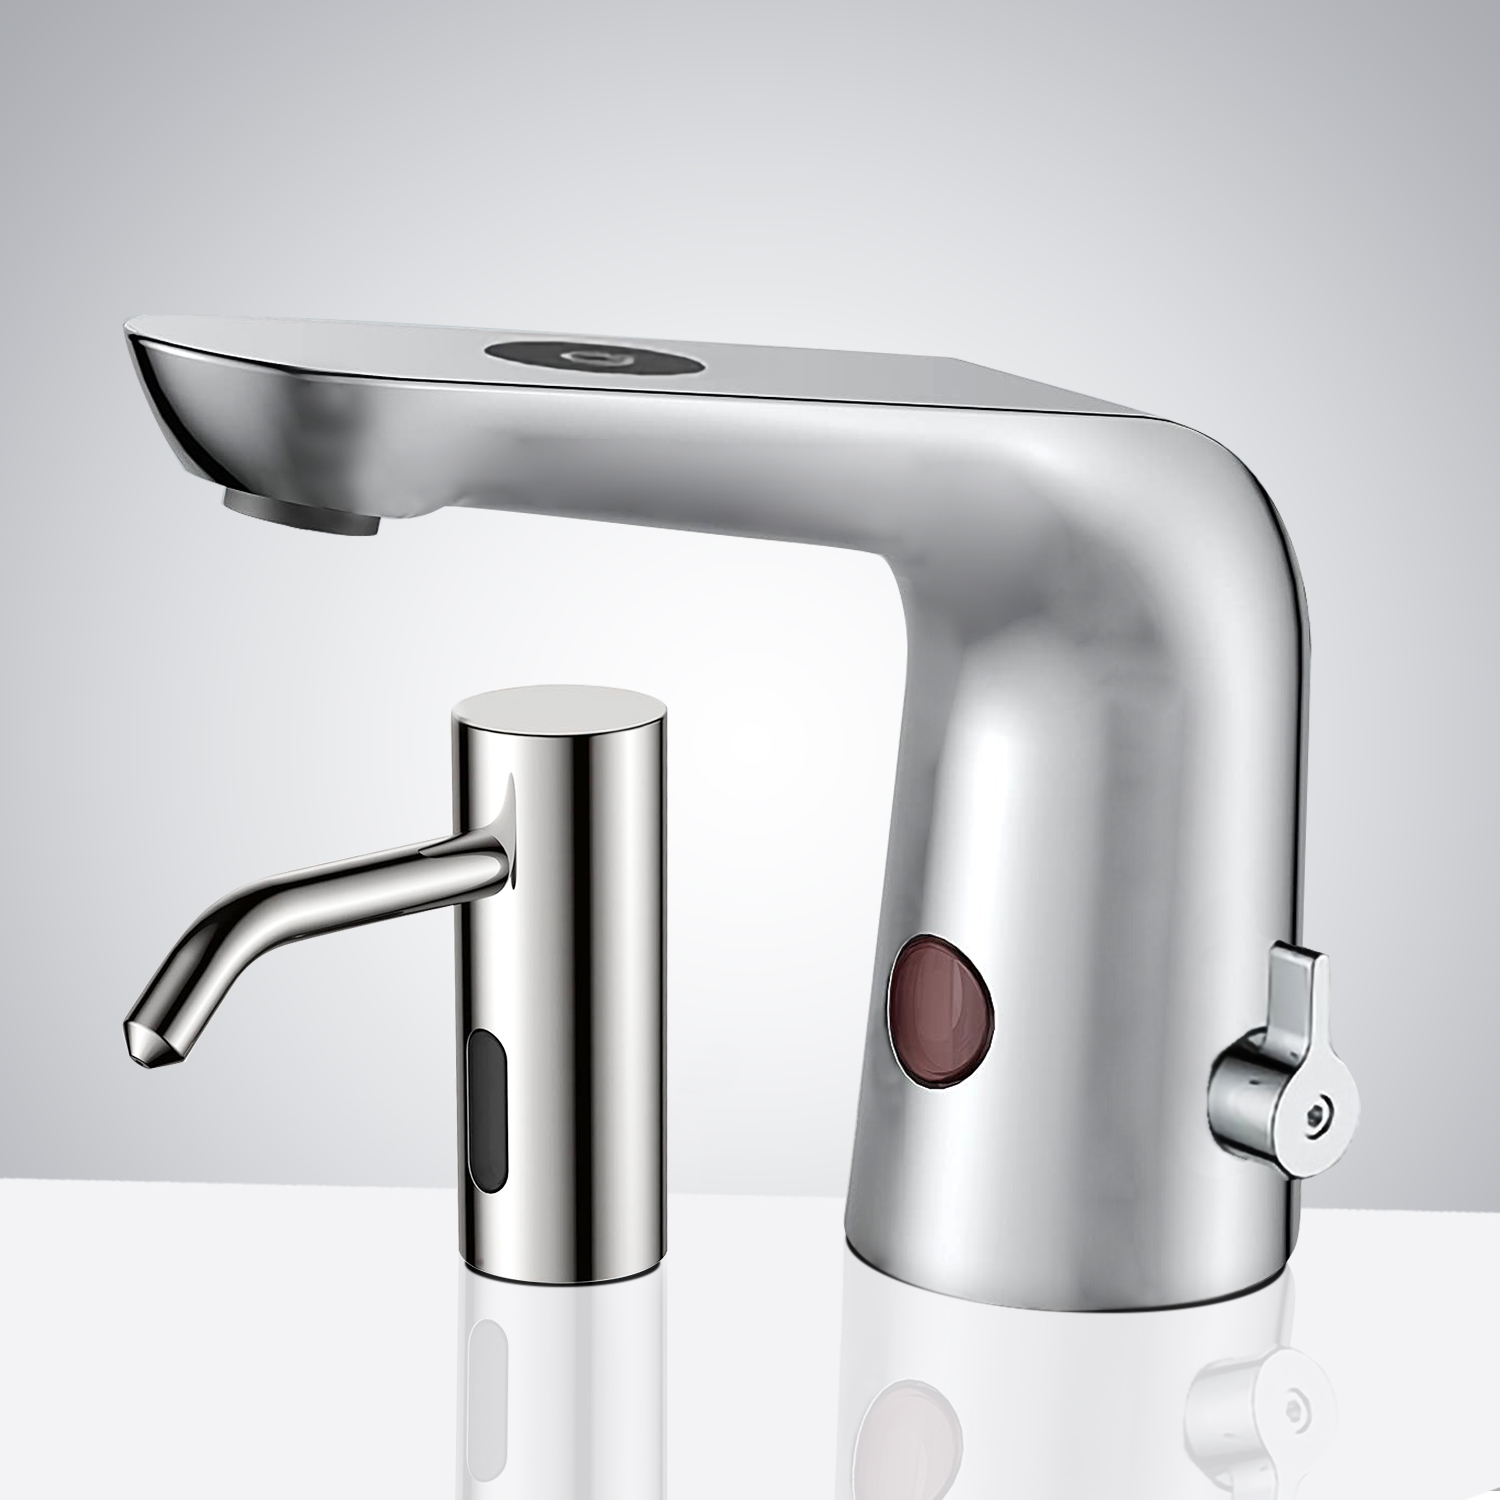 Fontana Deauville Brushed Nickel Commercial Touchless Motion Sensor Faucet & Automatic Deck Mount Liquid Soap Dispenser for Restrooms